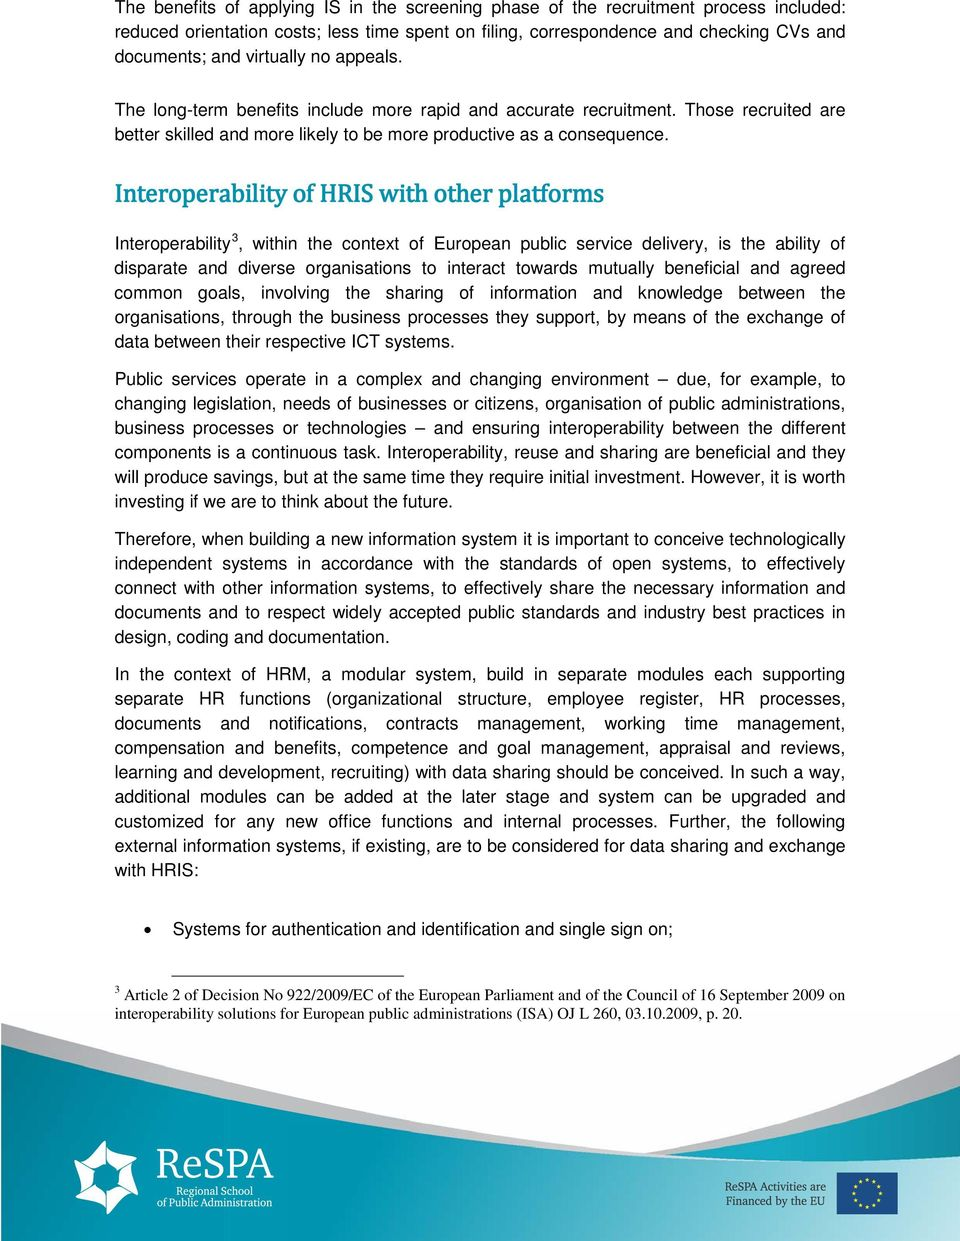 Interoperability of HRIS with other platforms Interoperability 3, within the context of European public service delivery, is the ability of disparate and diverse organisations to interact towards